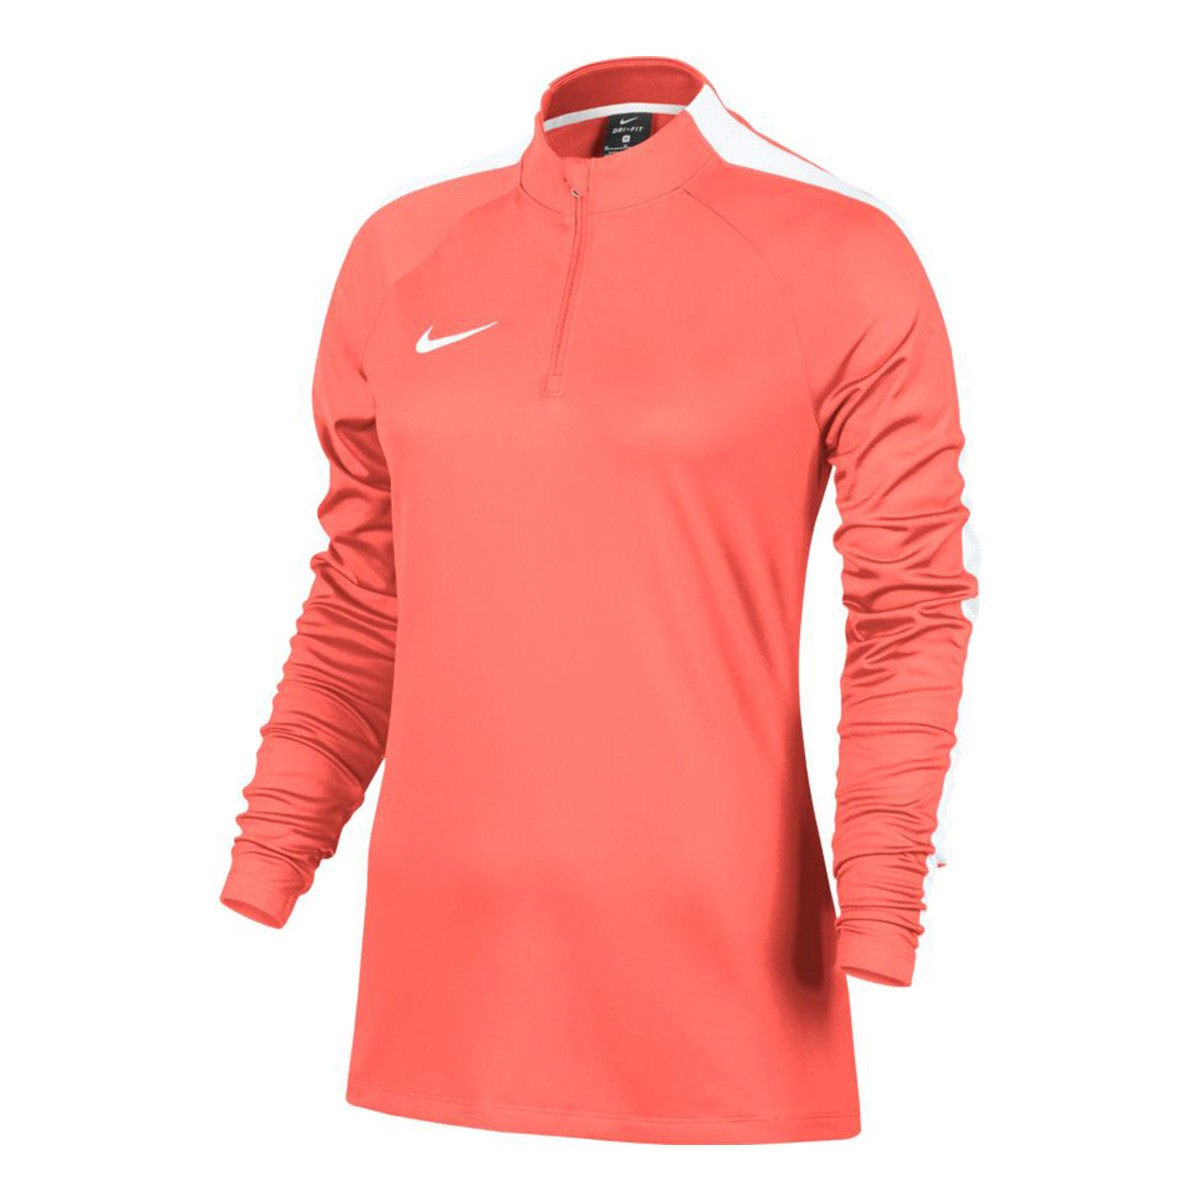 Sweatshirt Nike Woman Academy Football Drill Bright mango-White ... bf5d8f7395